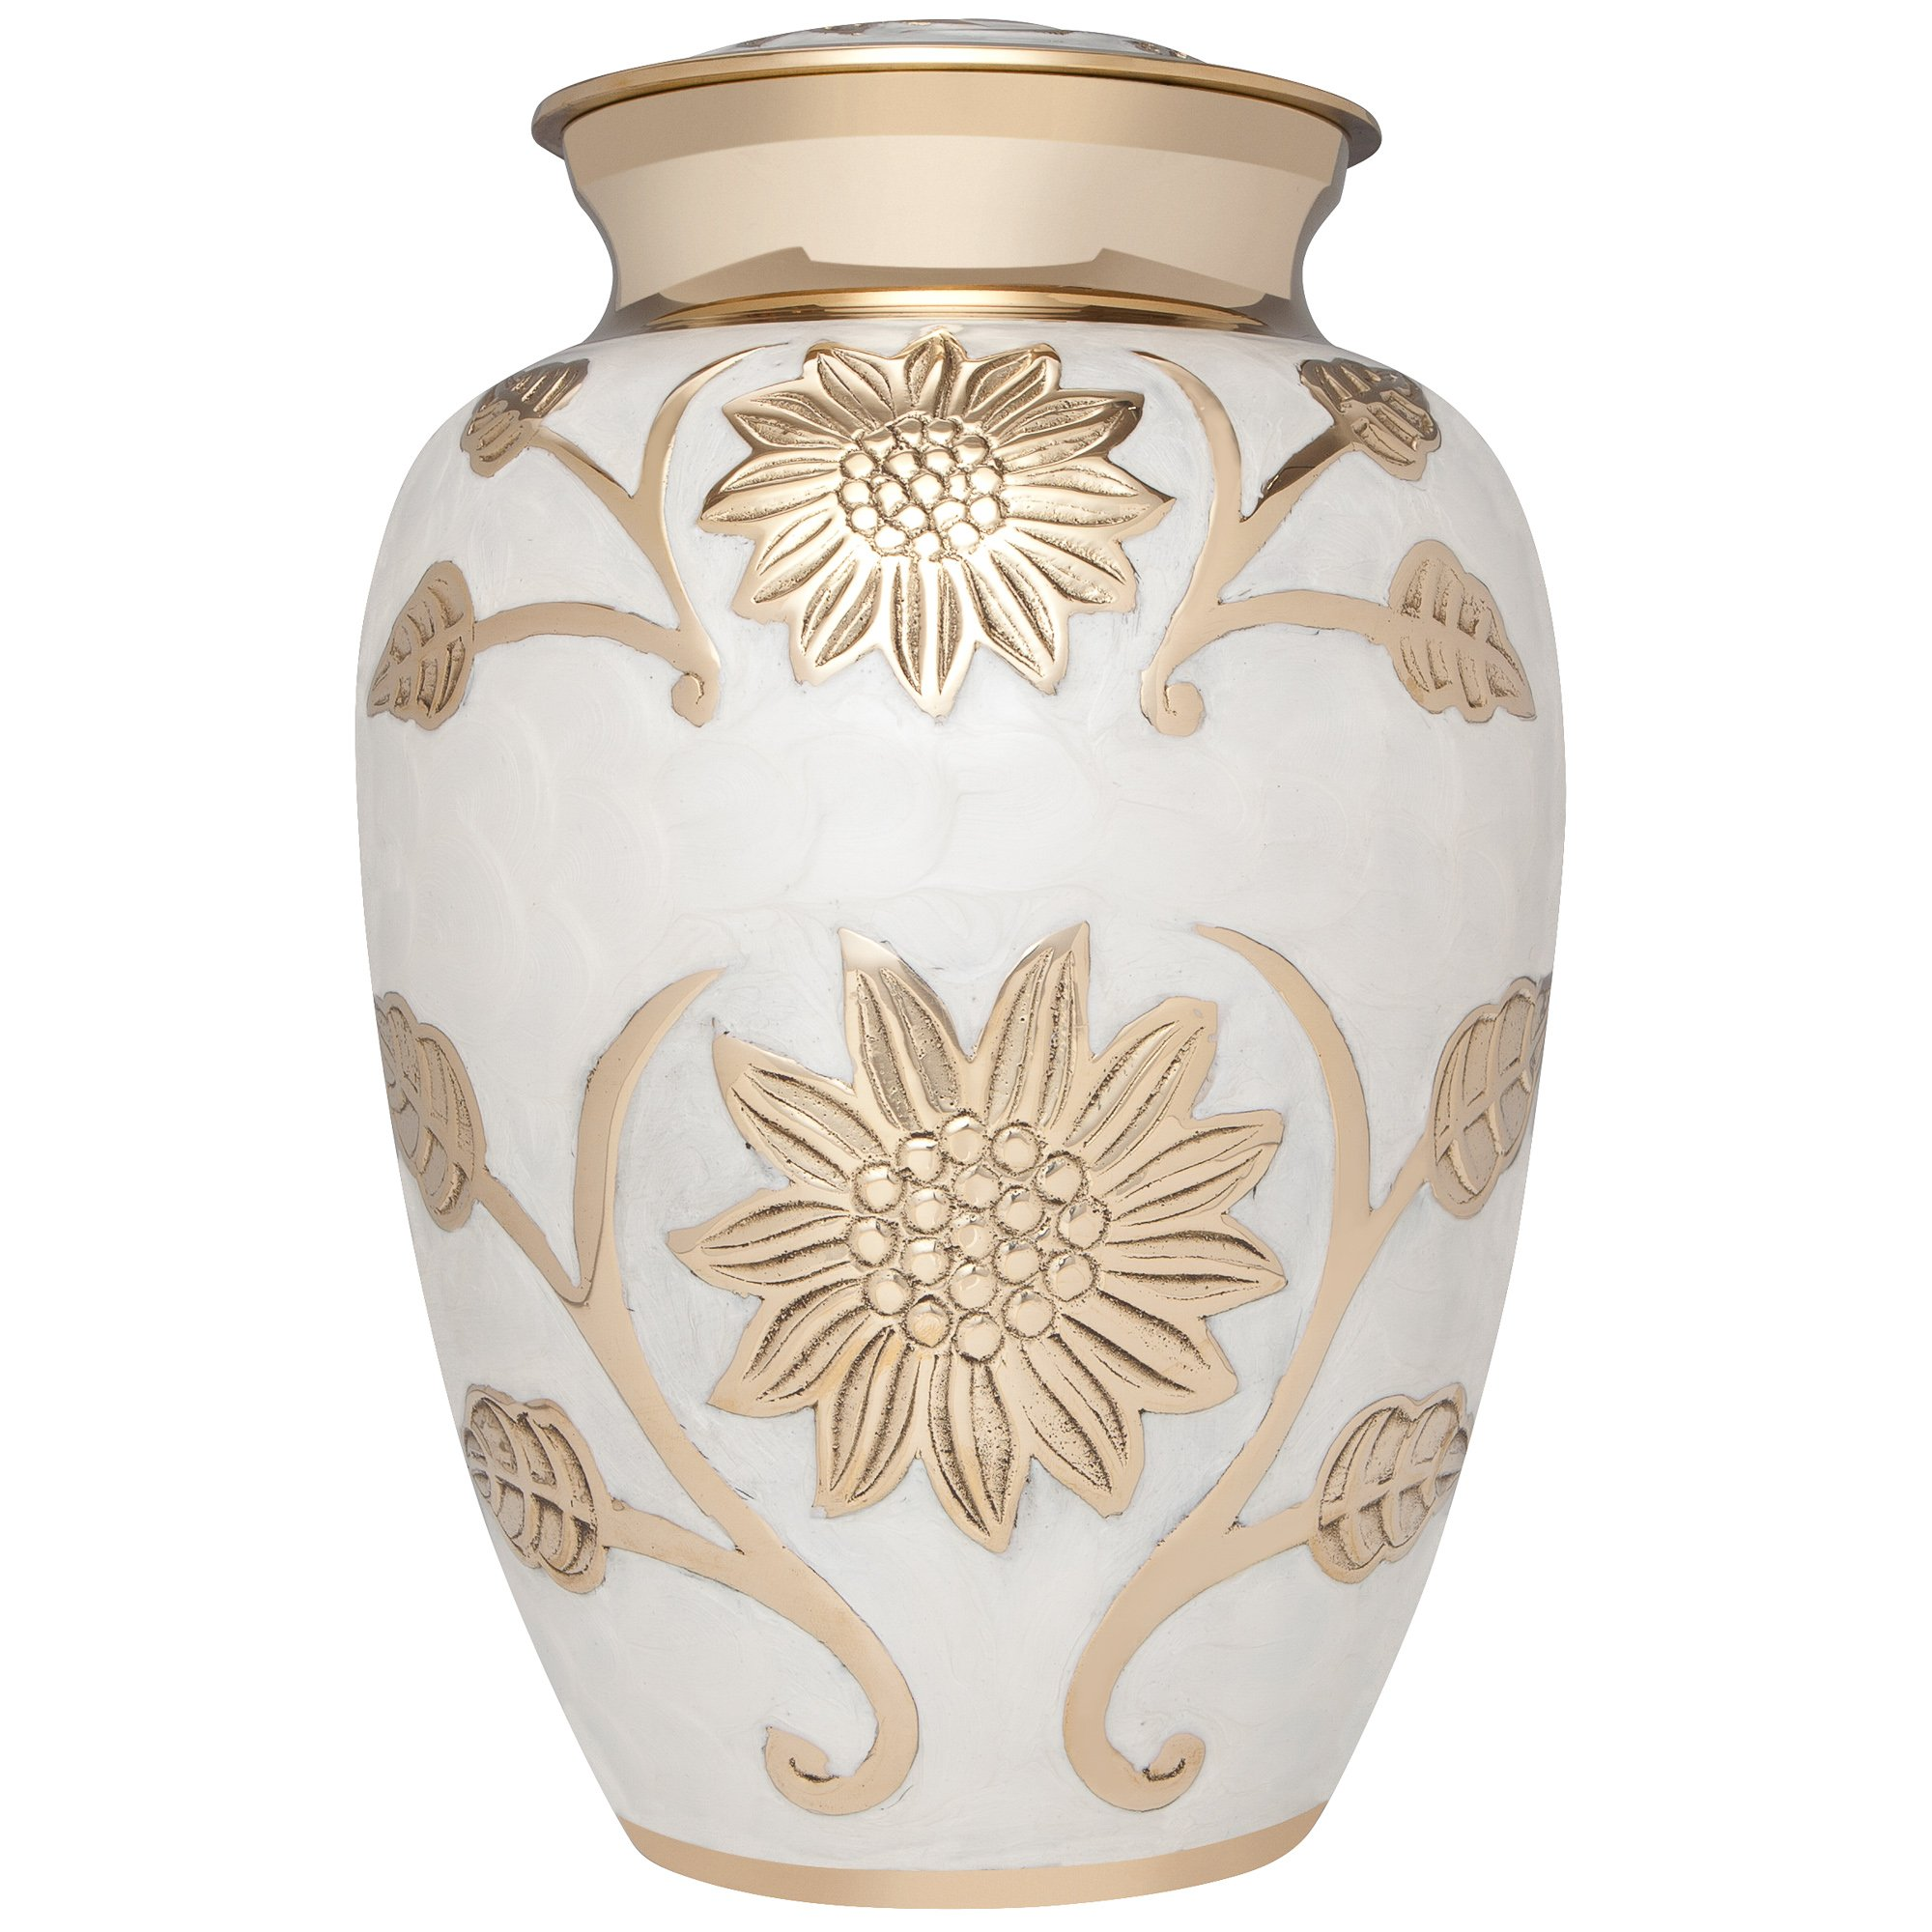 White Funeral Urn by Liliane Memorials - Cremation Urn for Human Ashes - Hand Made in Brass -Suitable for Cemetery Burial or Niche- Large Size fits remains of Adults up to 200 lbs- Lisette Blanc Model